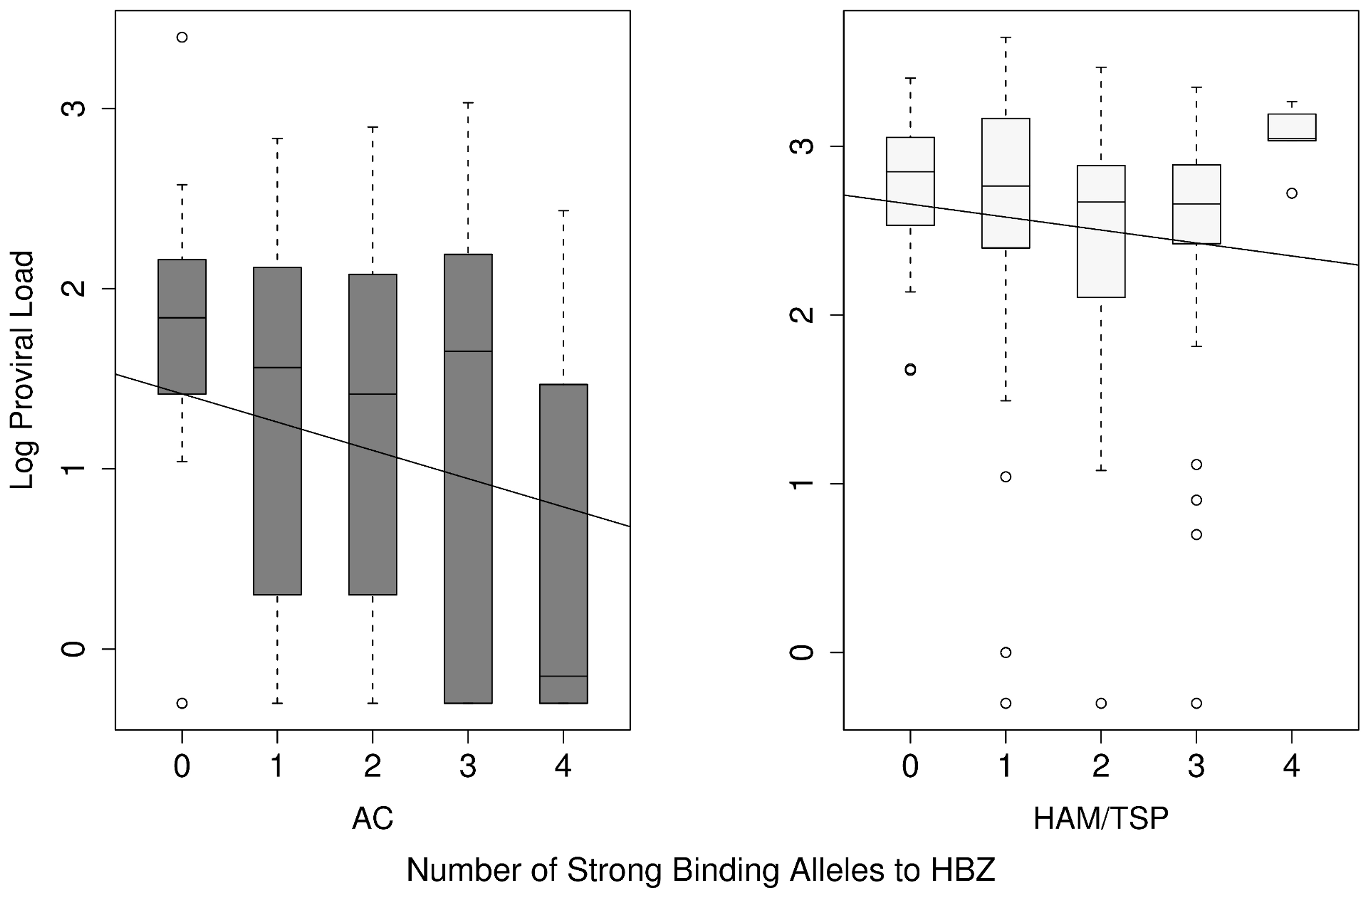 The count of strong binding alleles to HBZ per individual against their proviral load in AC and HAM/TSP groups.